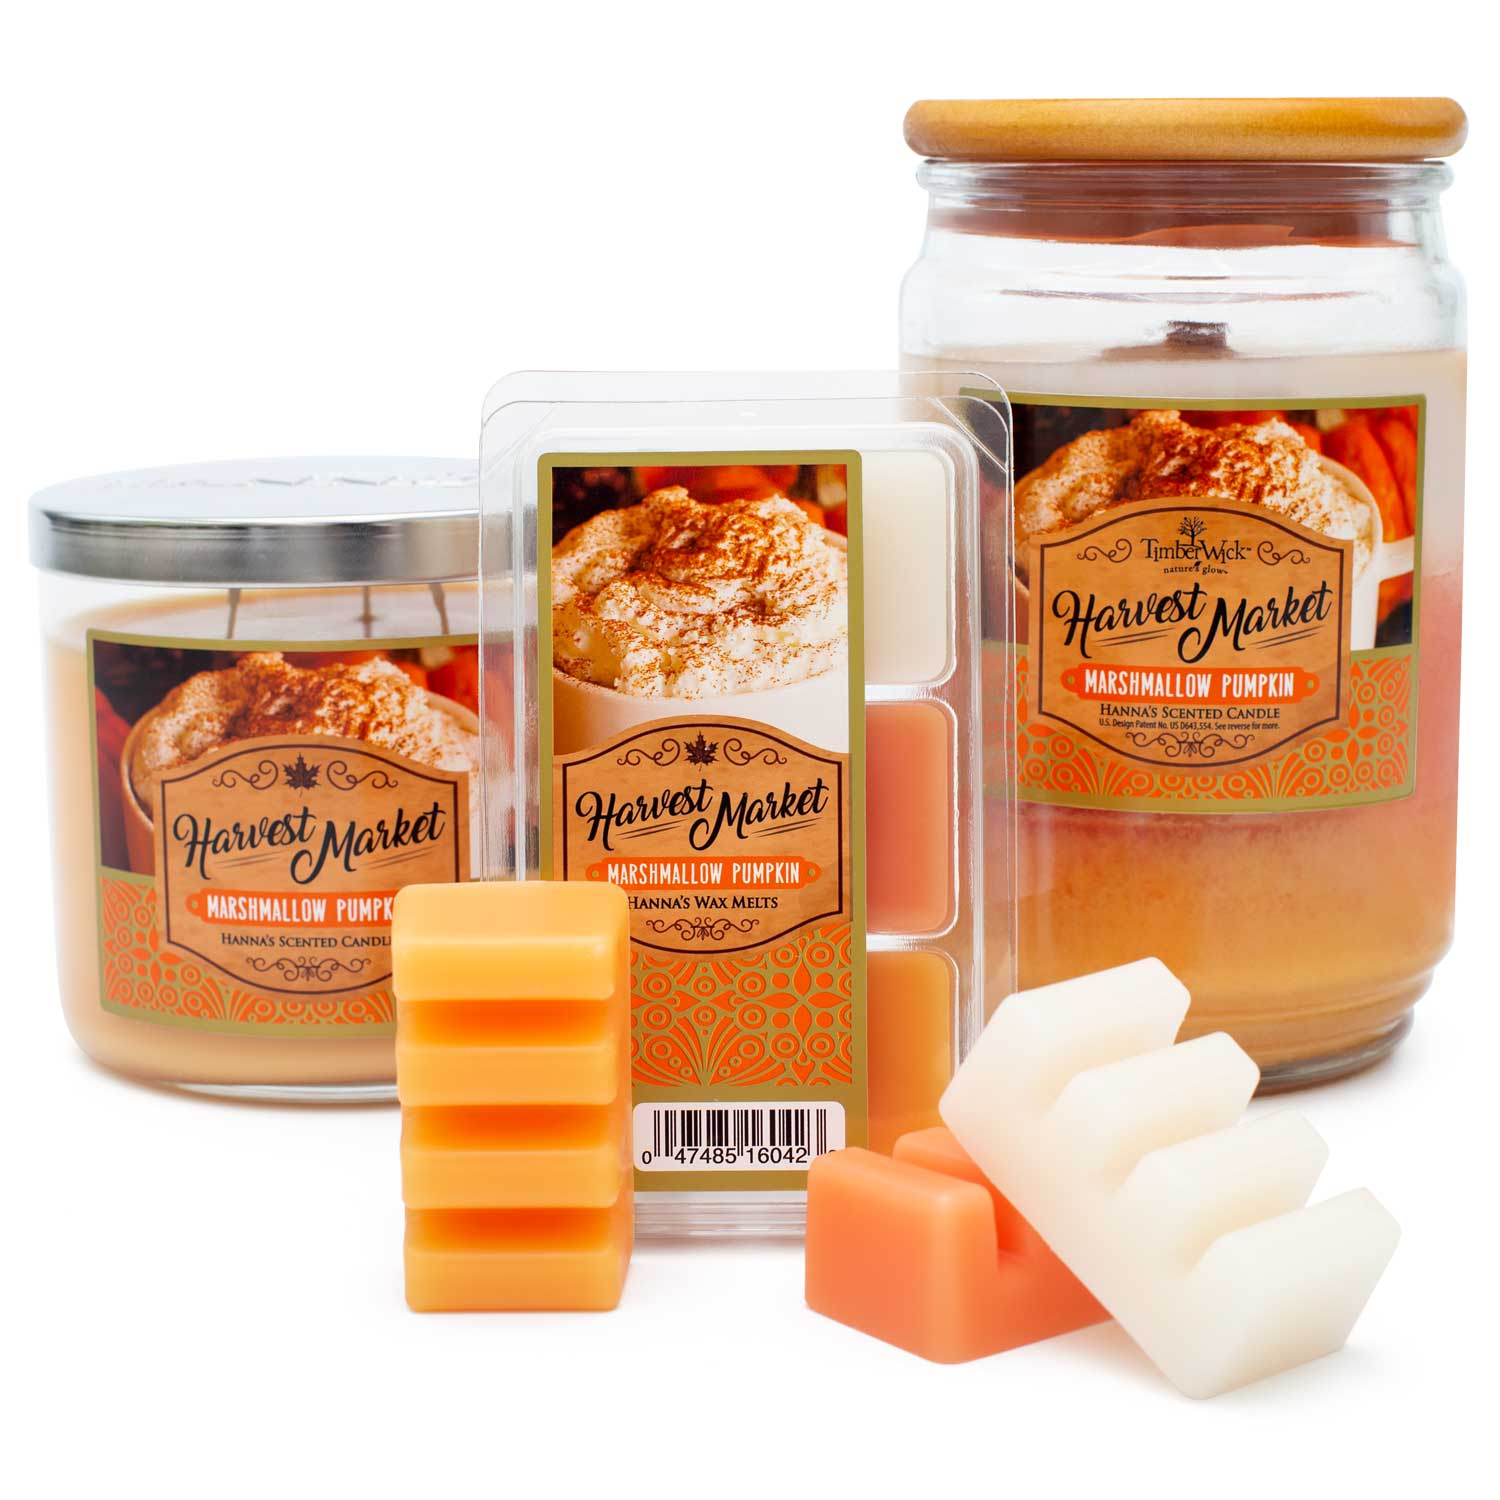 Marshmallow Pumpkin Scented Wax Melts